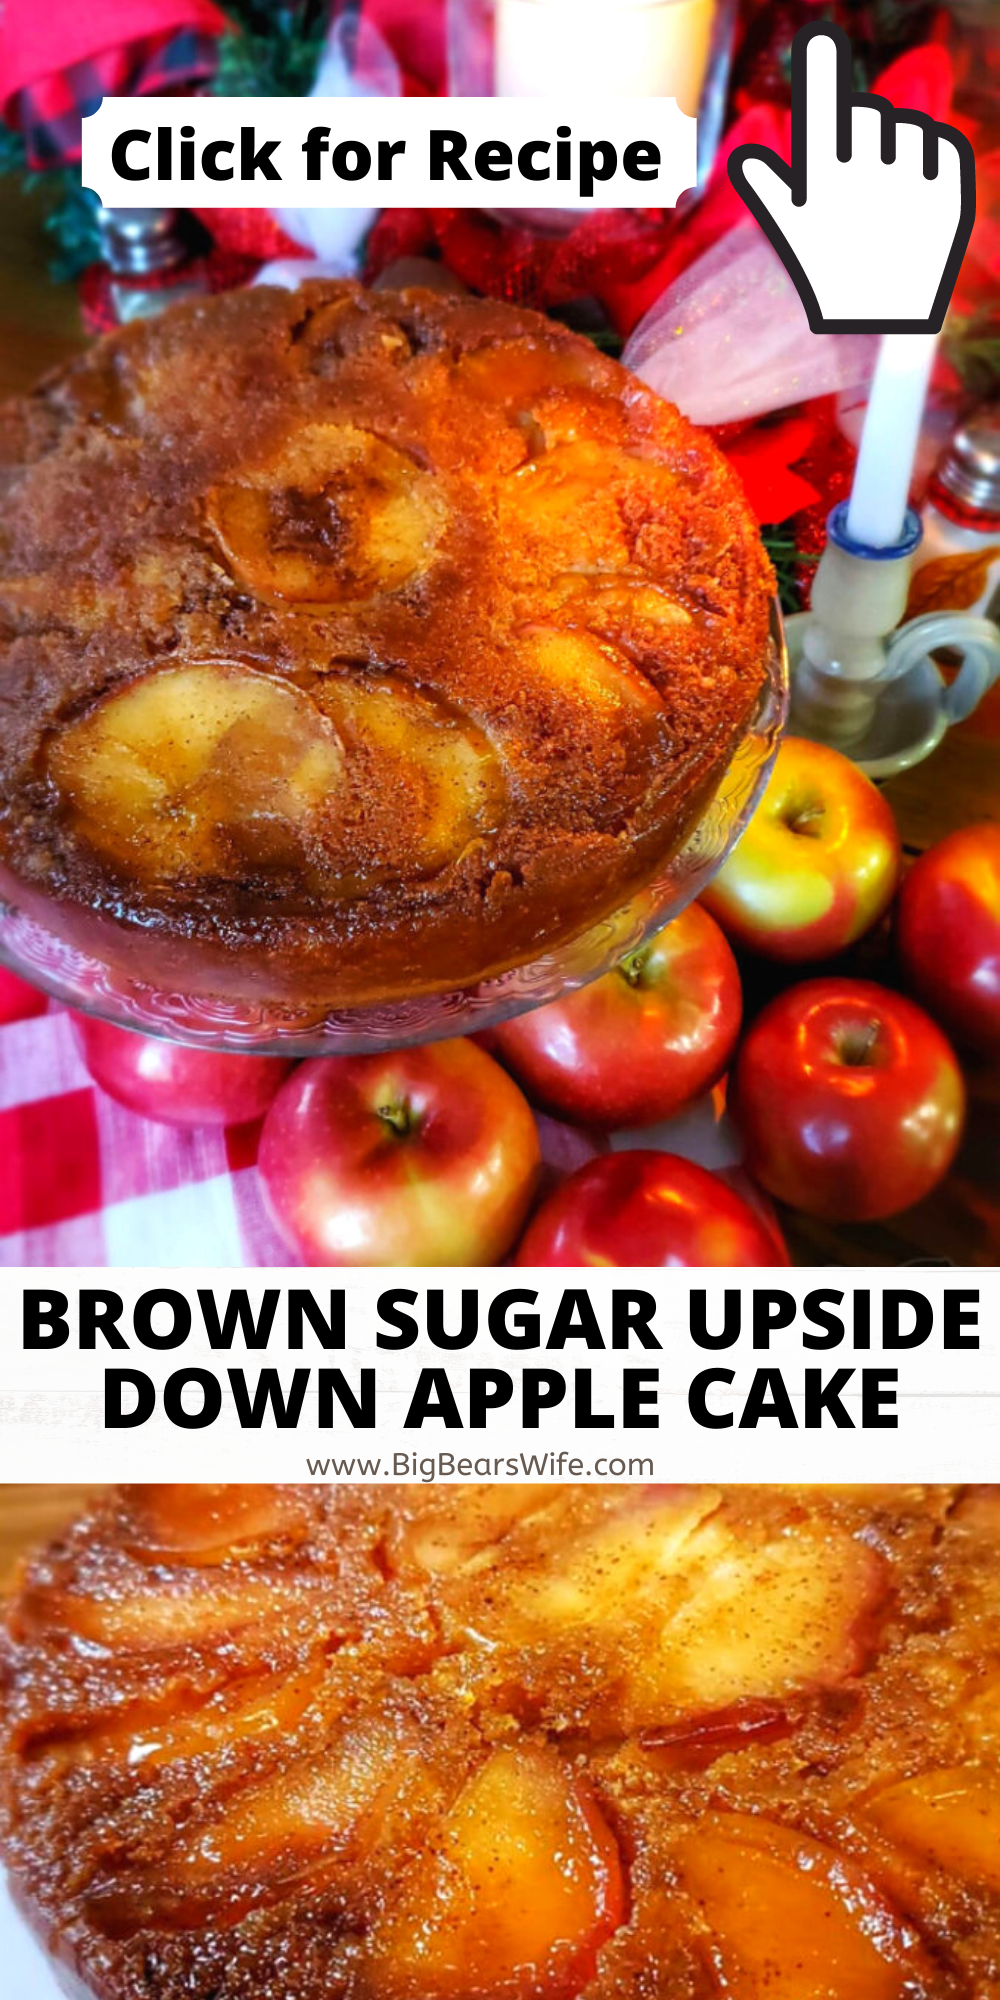 This Brown Sugar Upside Down Apple Cake is a old fashioned apple cake with a modern shortcut in the ingredients list! It's beautiful, delicious and super easy to make! via @bigbearswife